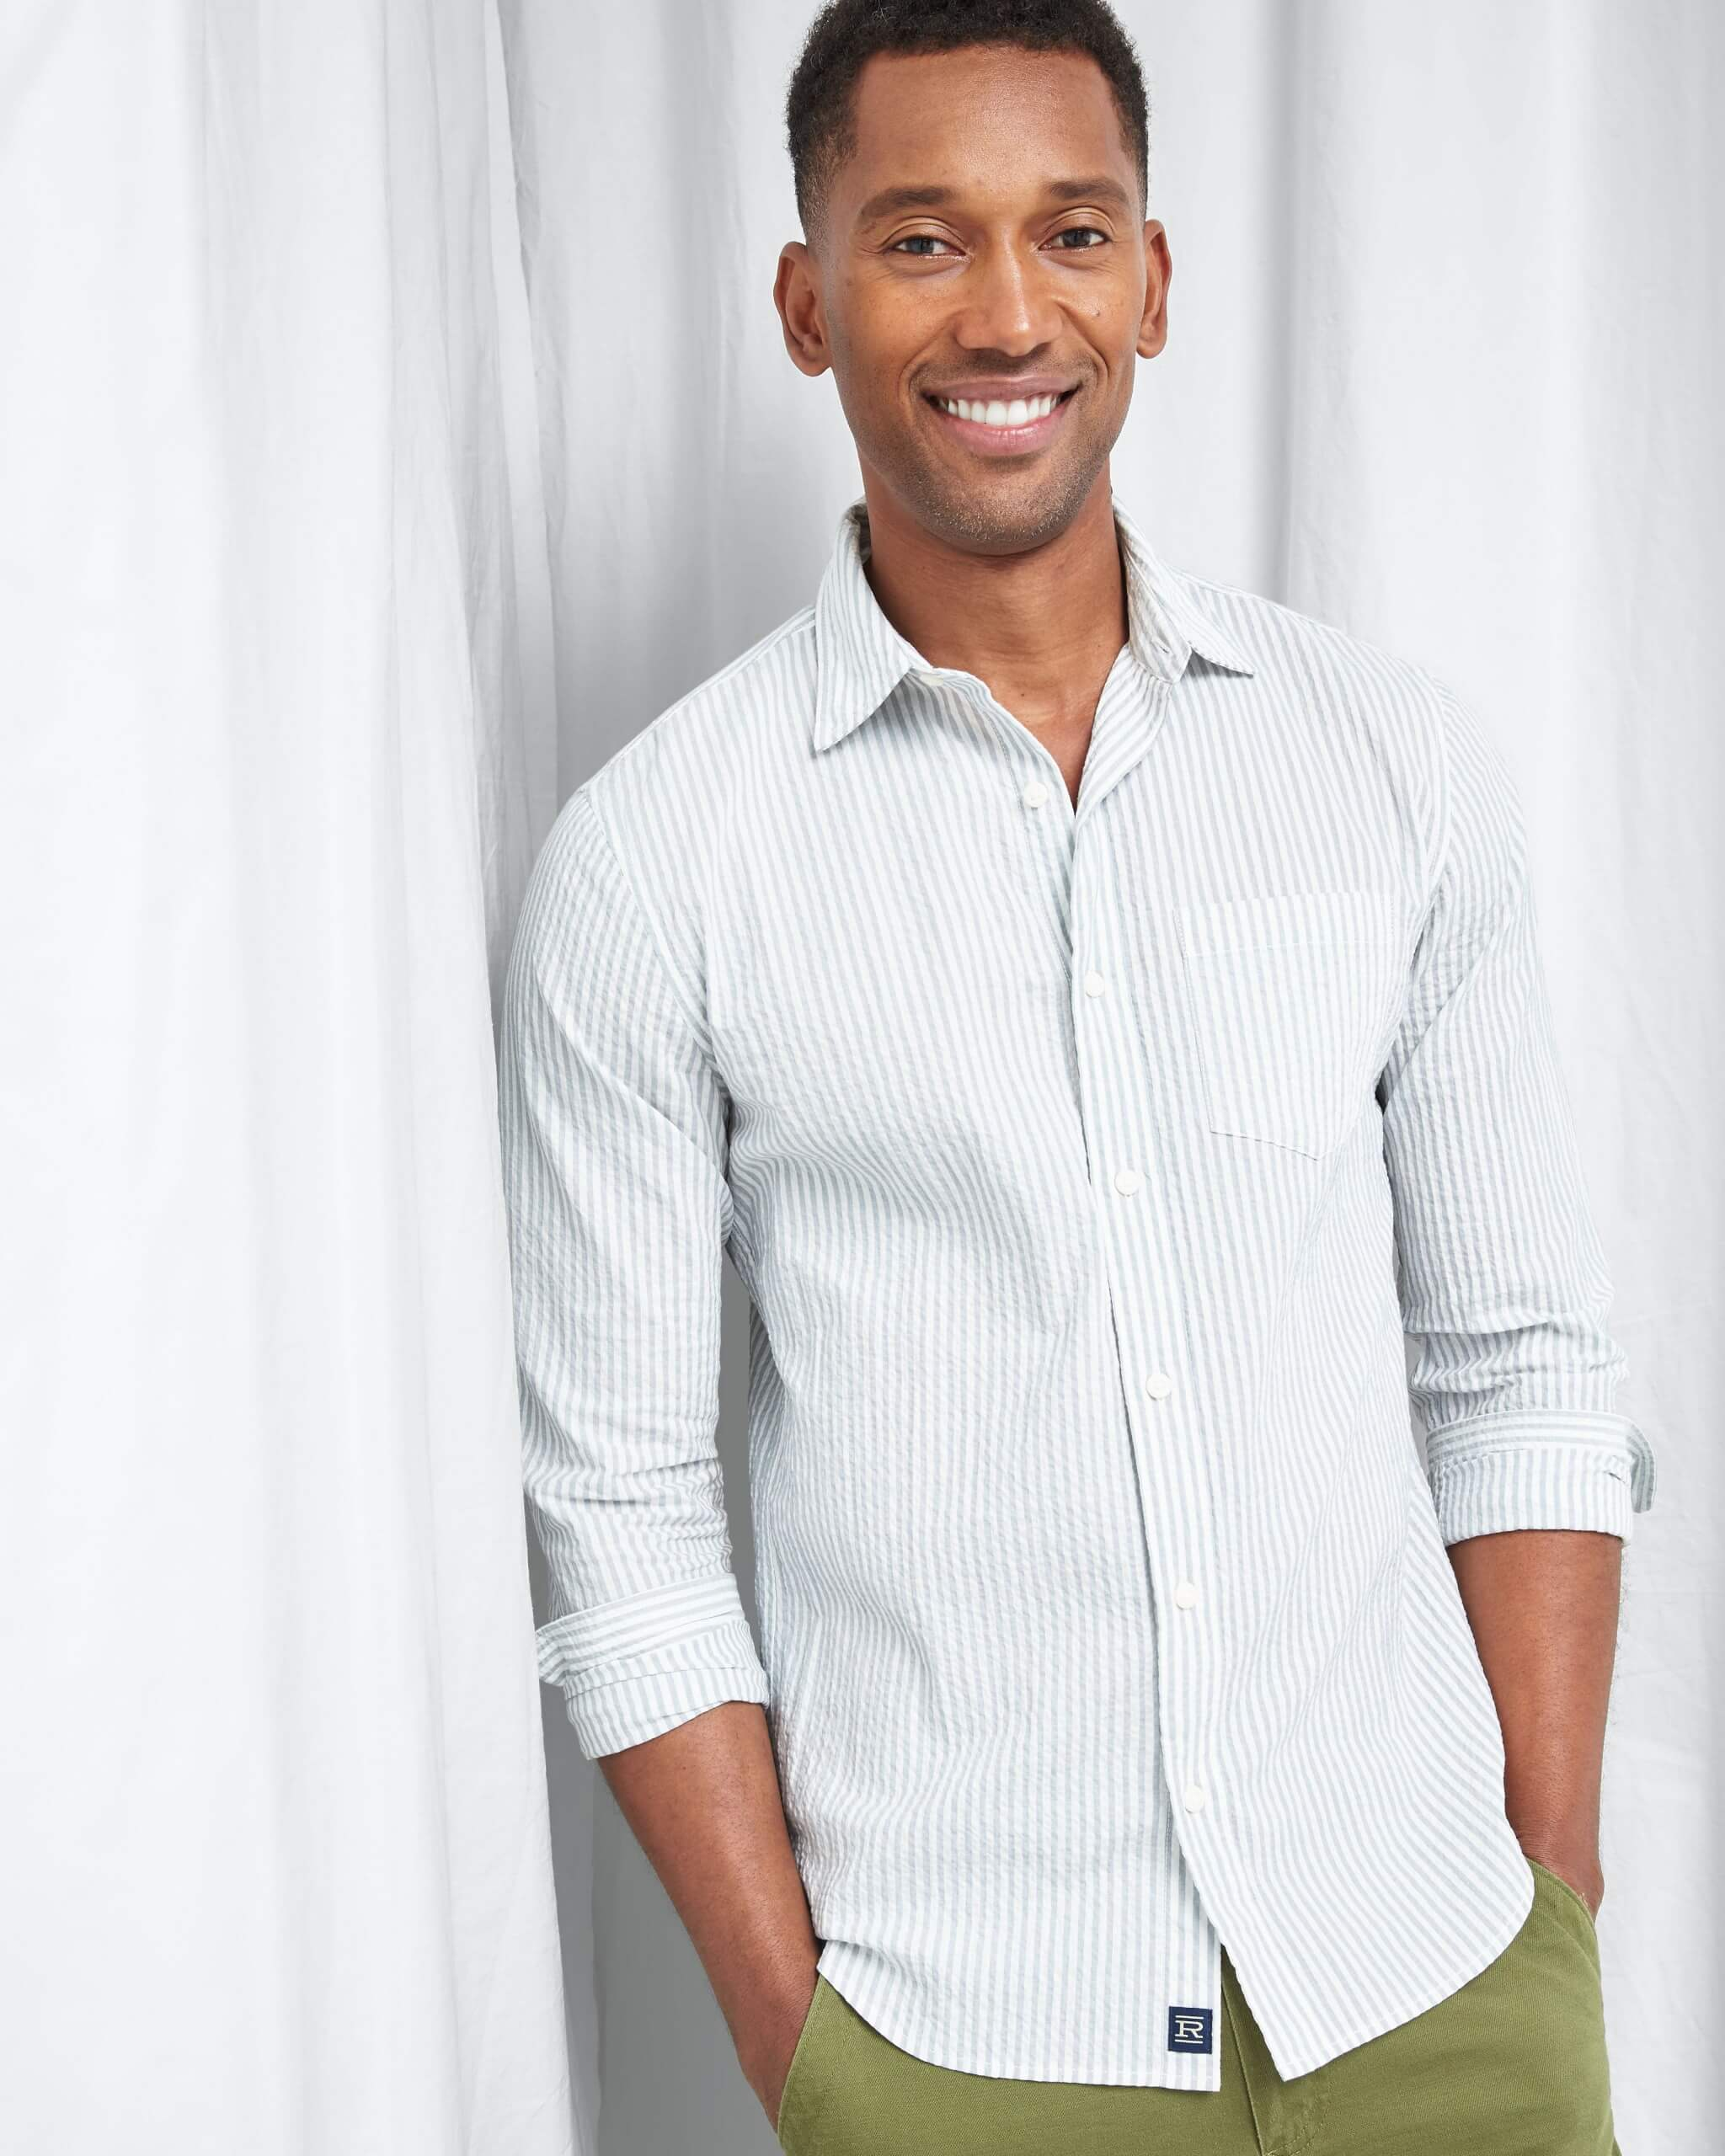 Stitch Fix Men's model standing wearing white and light blue striped button-down shirt and green pants.